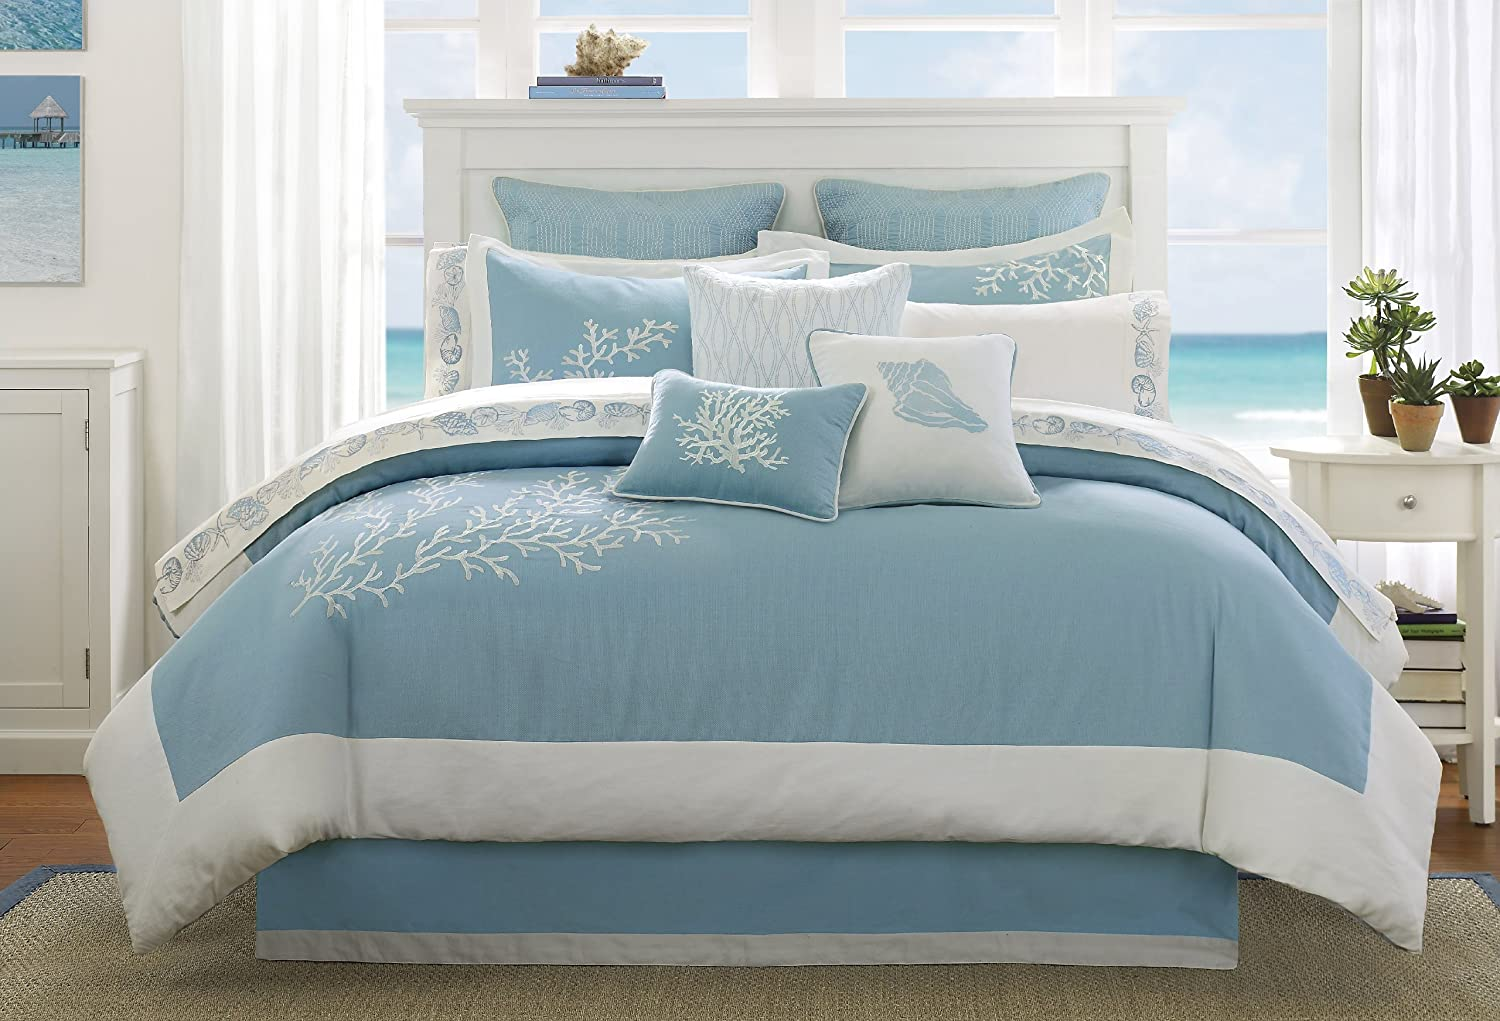 Beach comforters quilts ease bedding with style for Bedroom quilt ideas